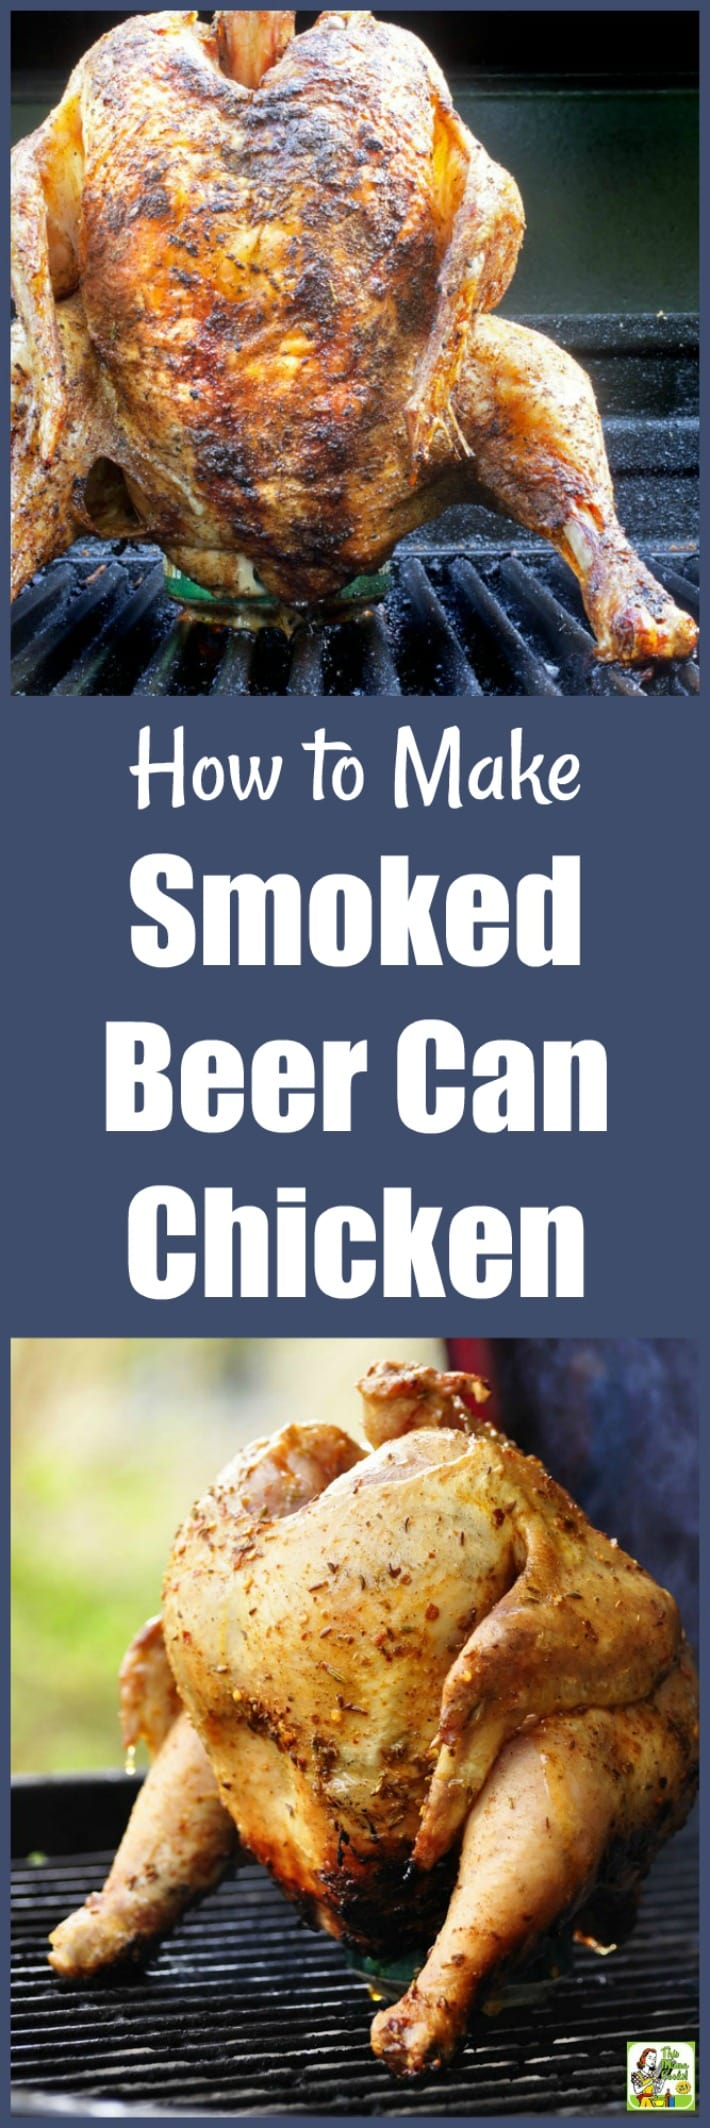 How to Make Smoked Beer Can Chicken